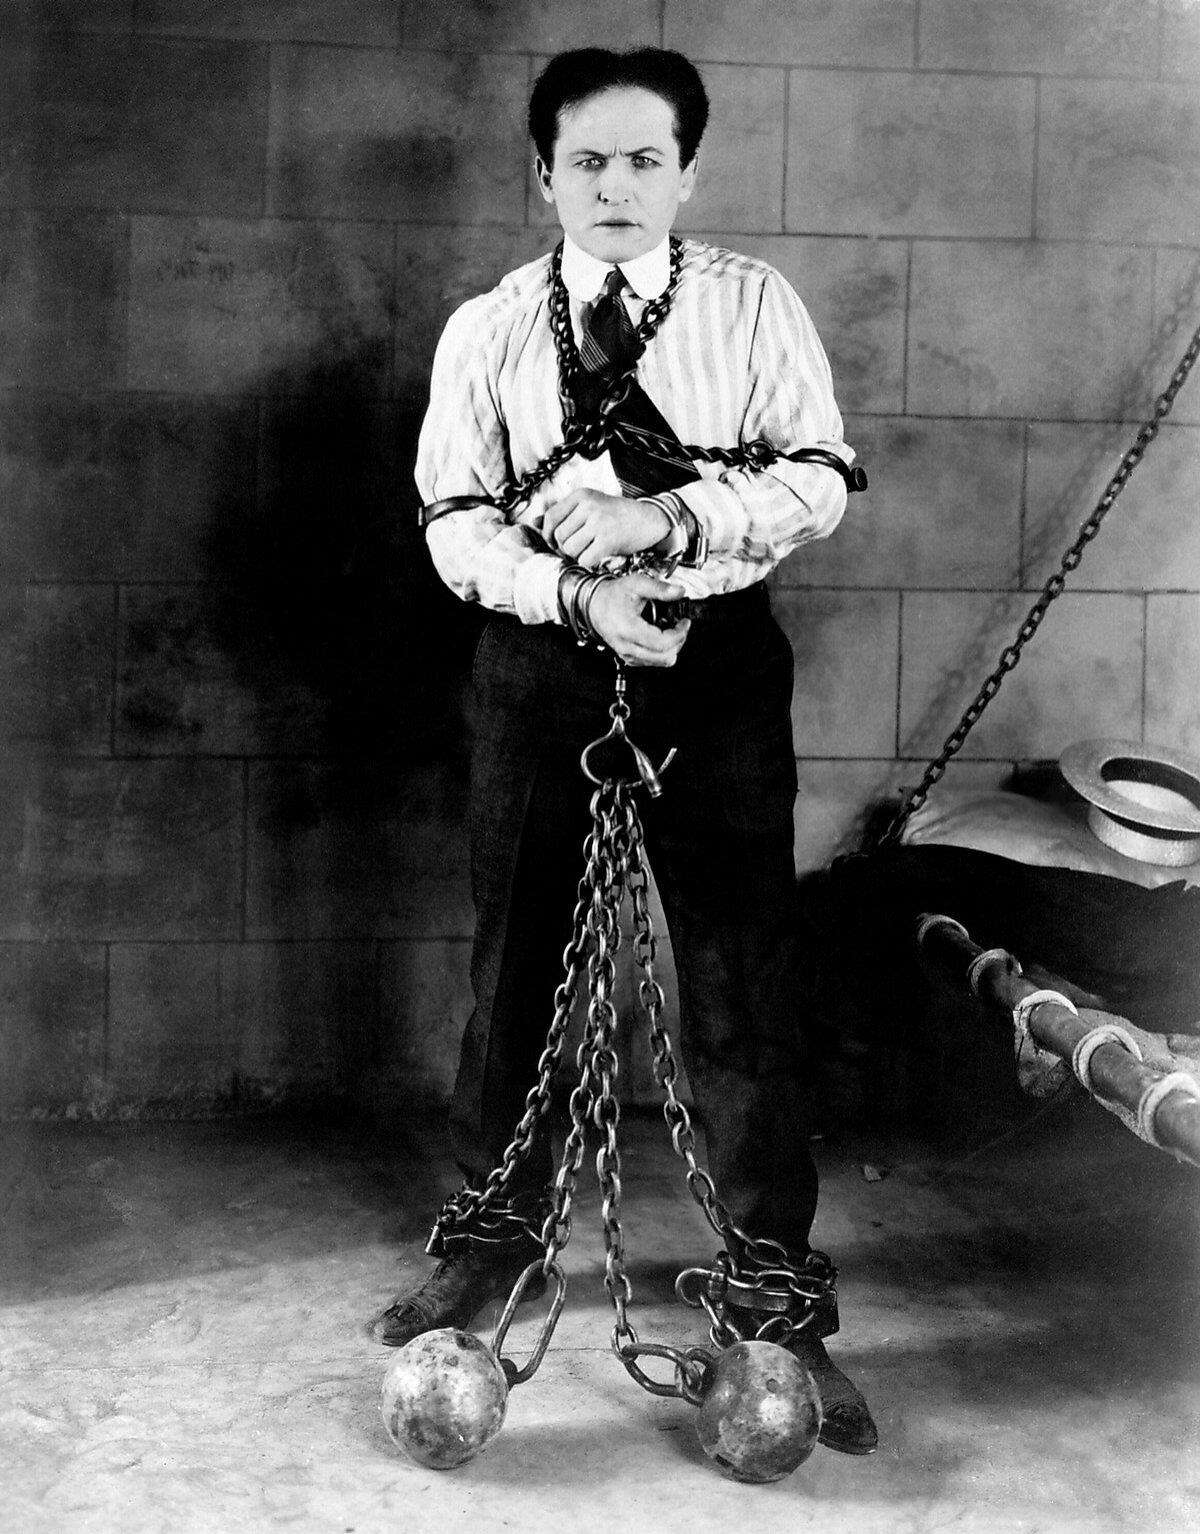 Harry Houdini (1874-1926) was an escape artist and is one of the most famous names in magic.Buried at Machpelah Cemetery, New York City, NY.